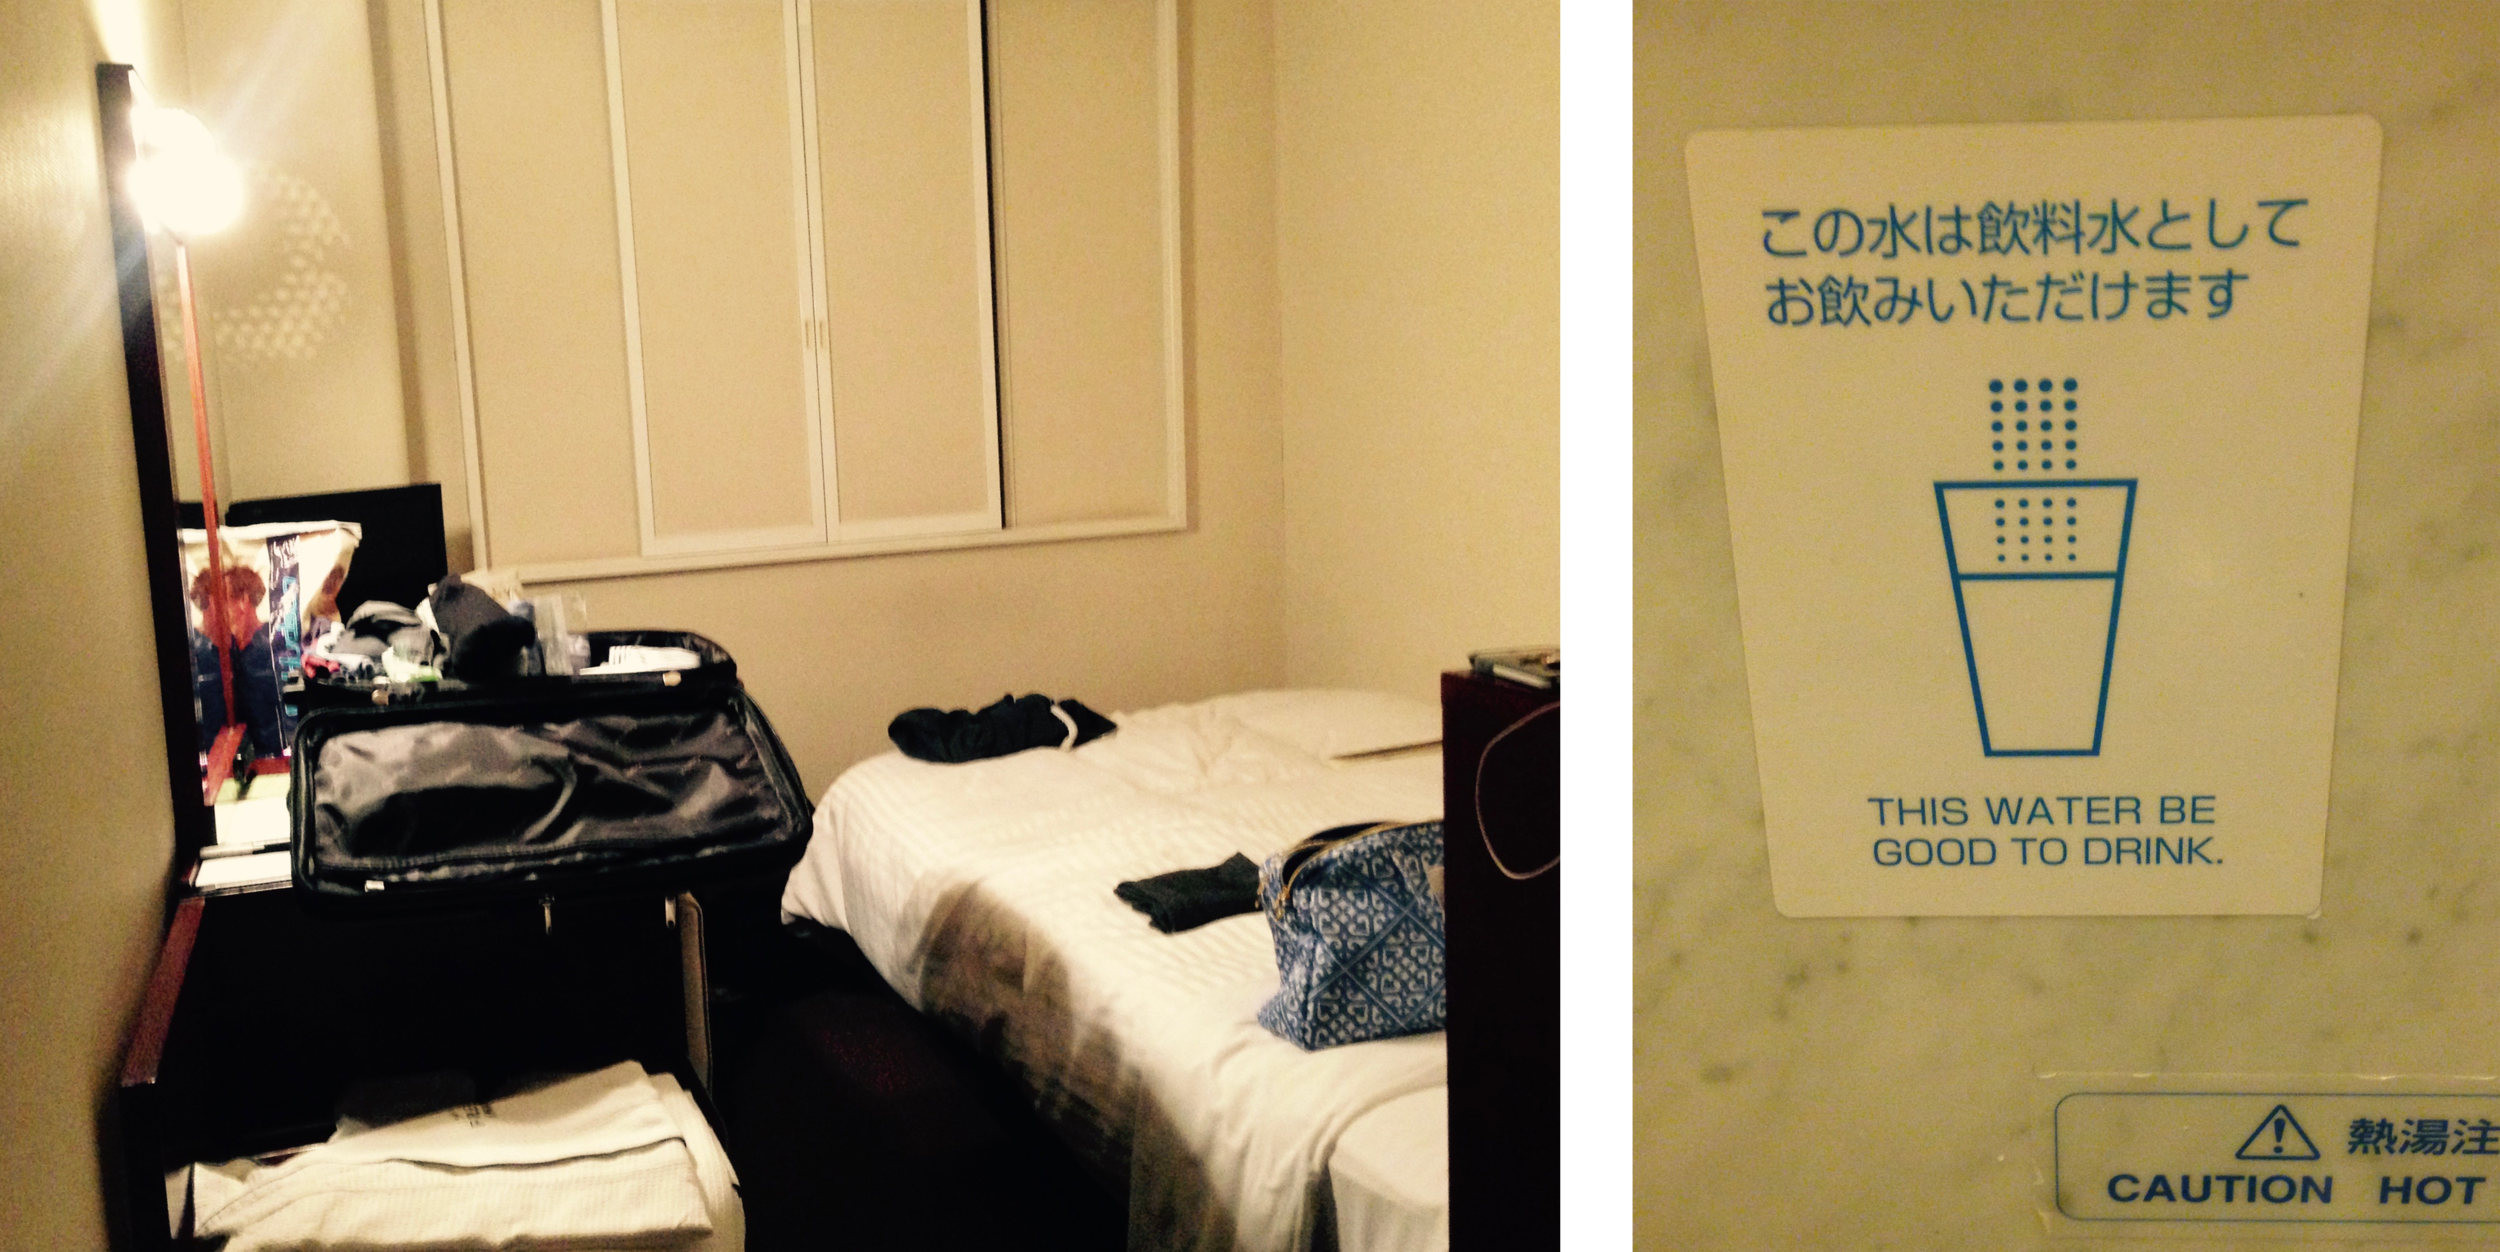 Our first tiny hotel room,and the English translated sign above the sink in the bathroom,love it!